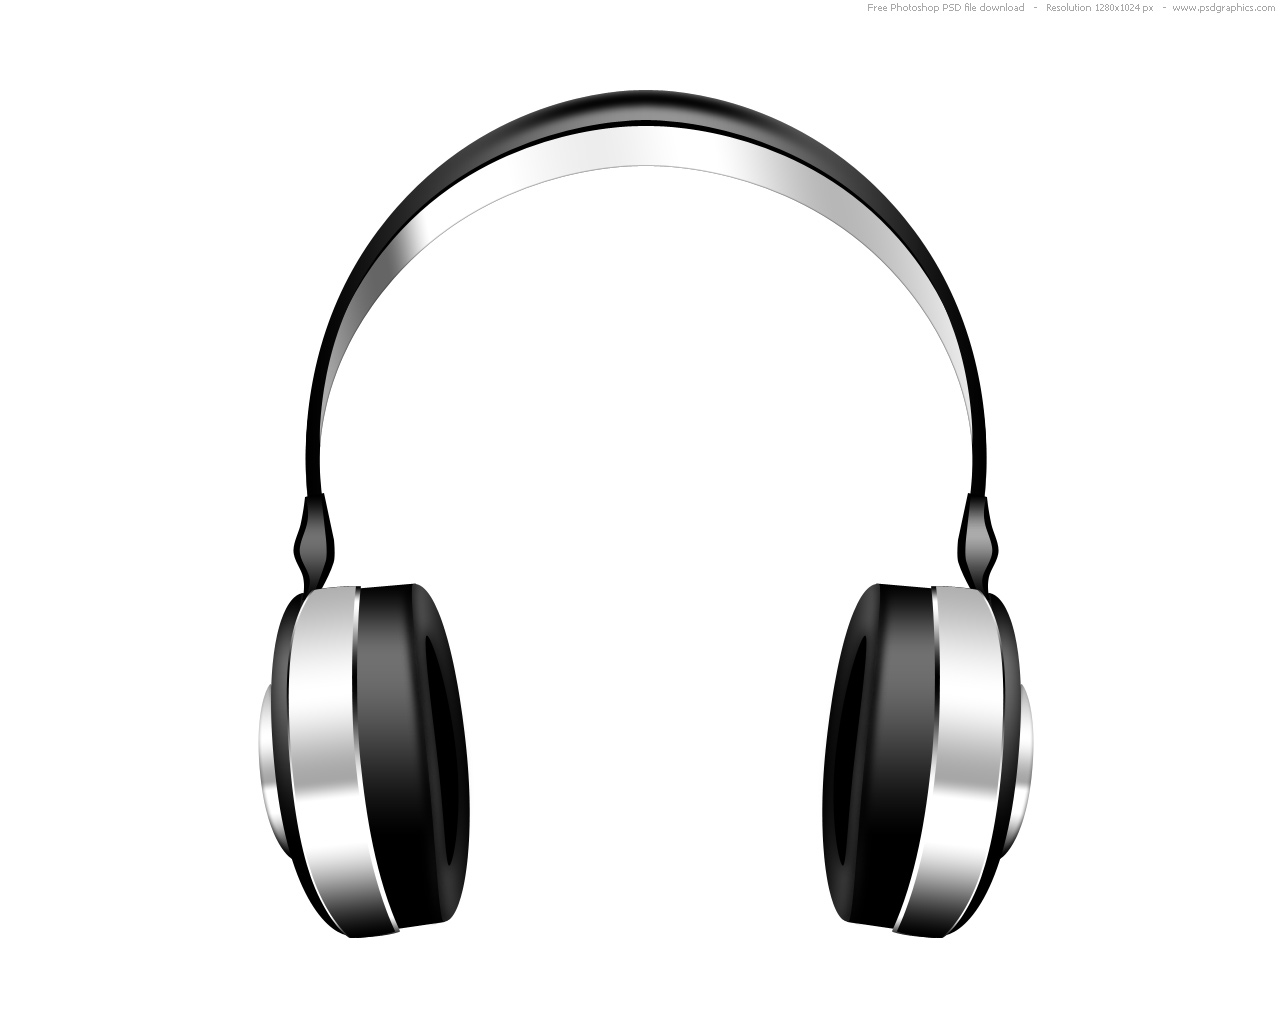 Download Free High-quality Headphones Png Transparent Images image #20165